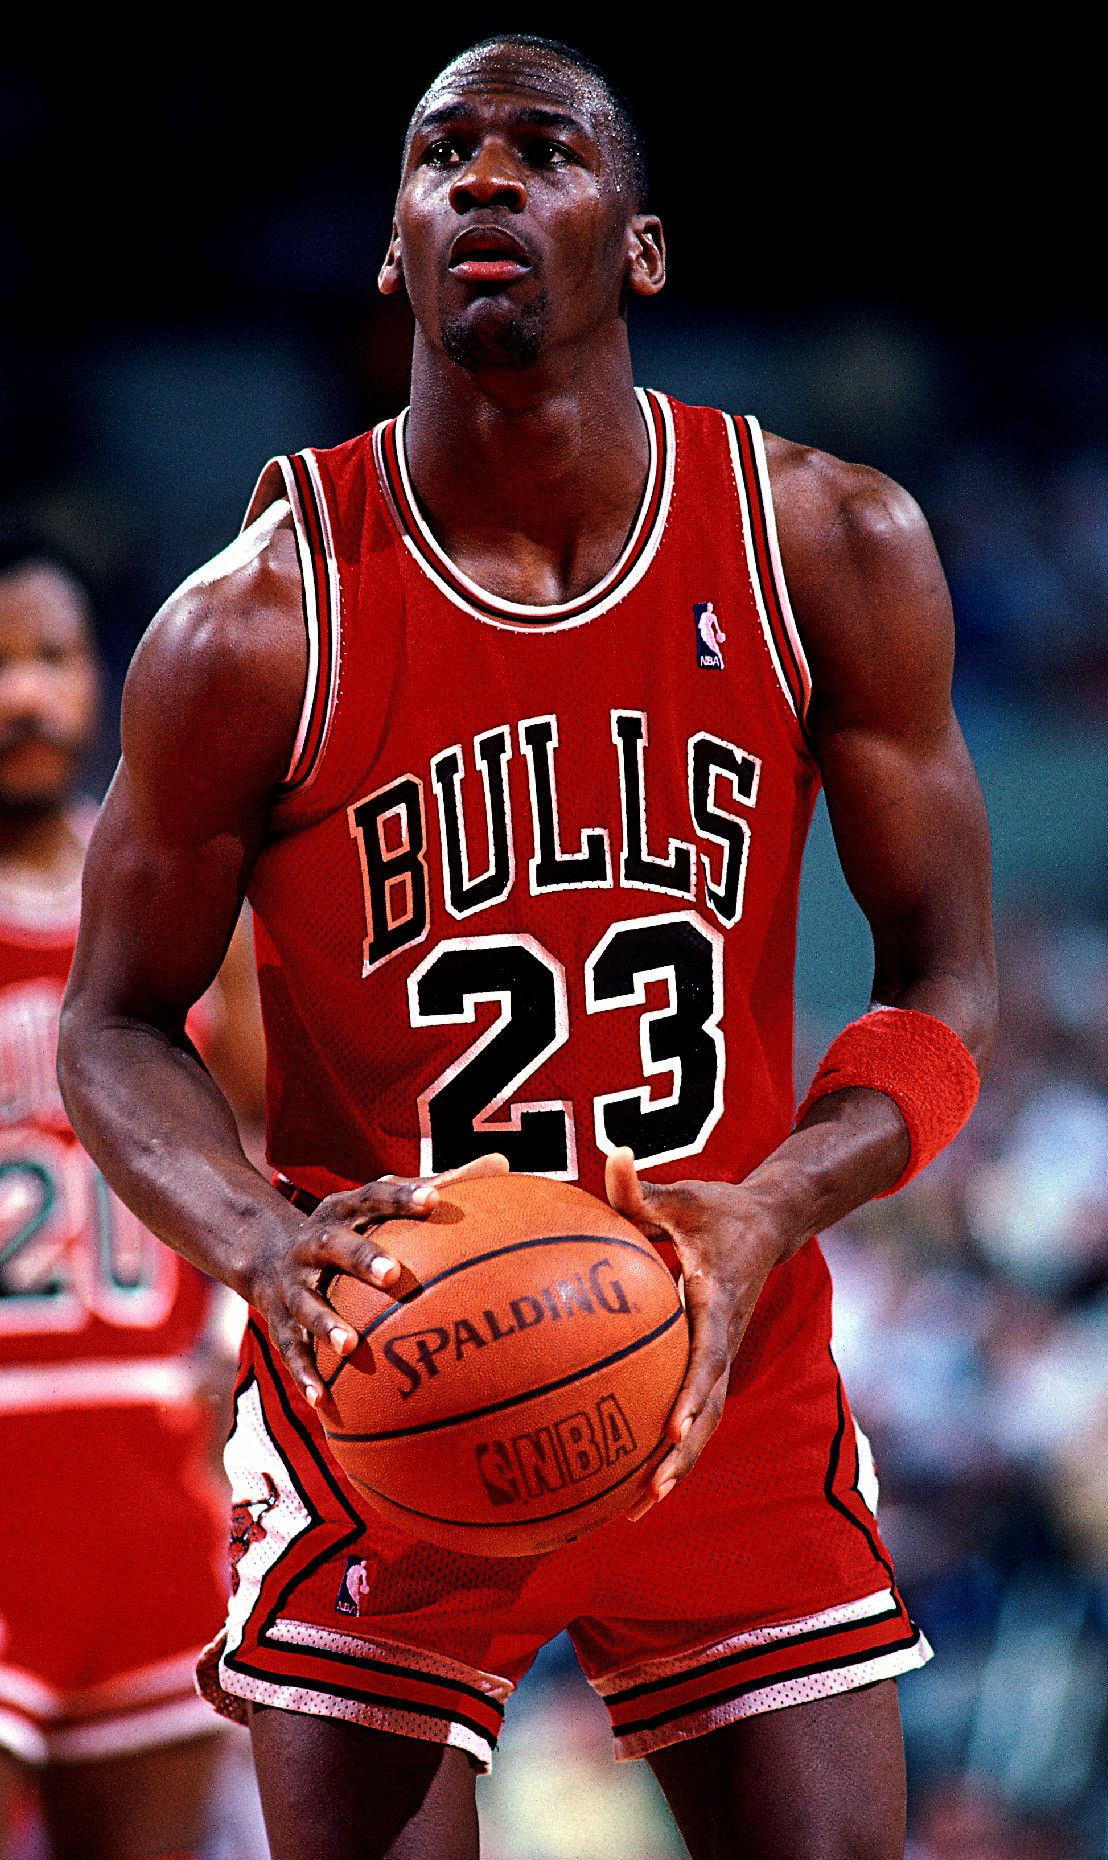 f80973350f0 Michael Jordan I loved him unconditional in the 90's Now he is just a hound  dog,,,Thanks for the memories.